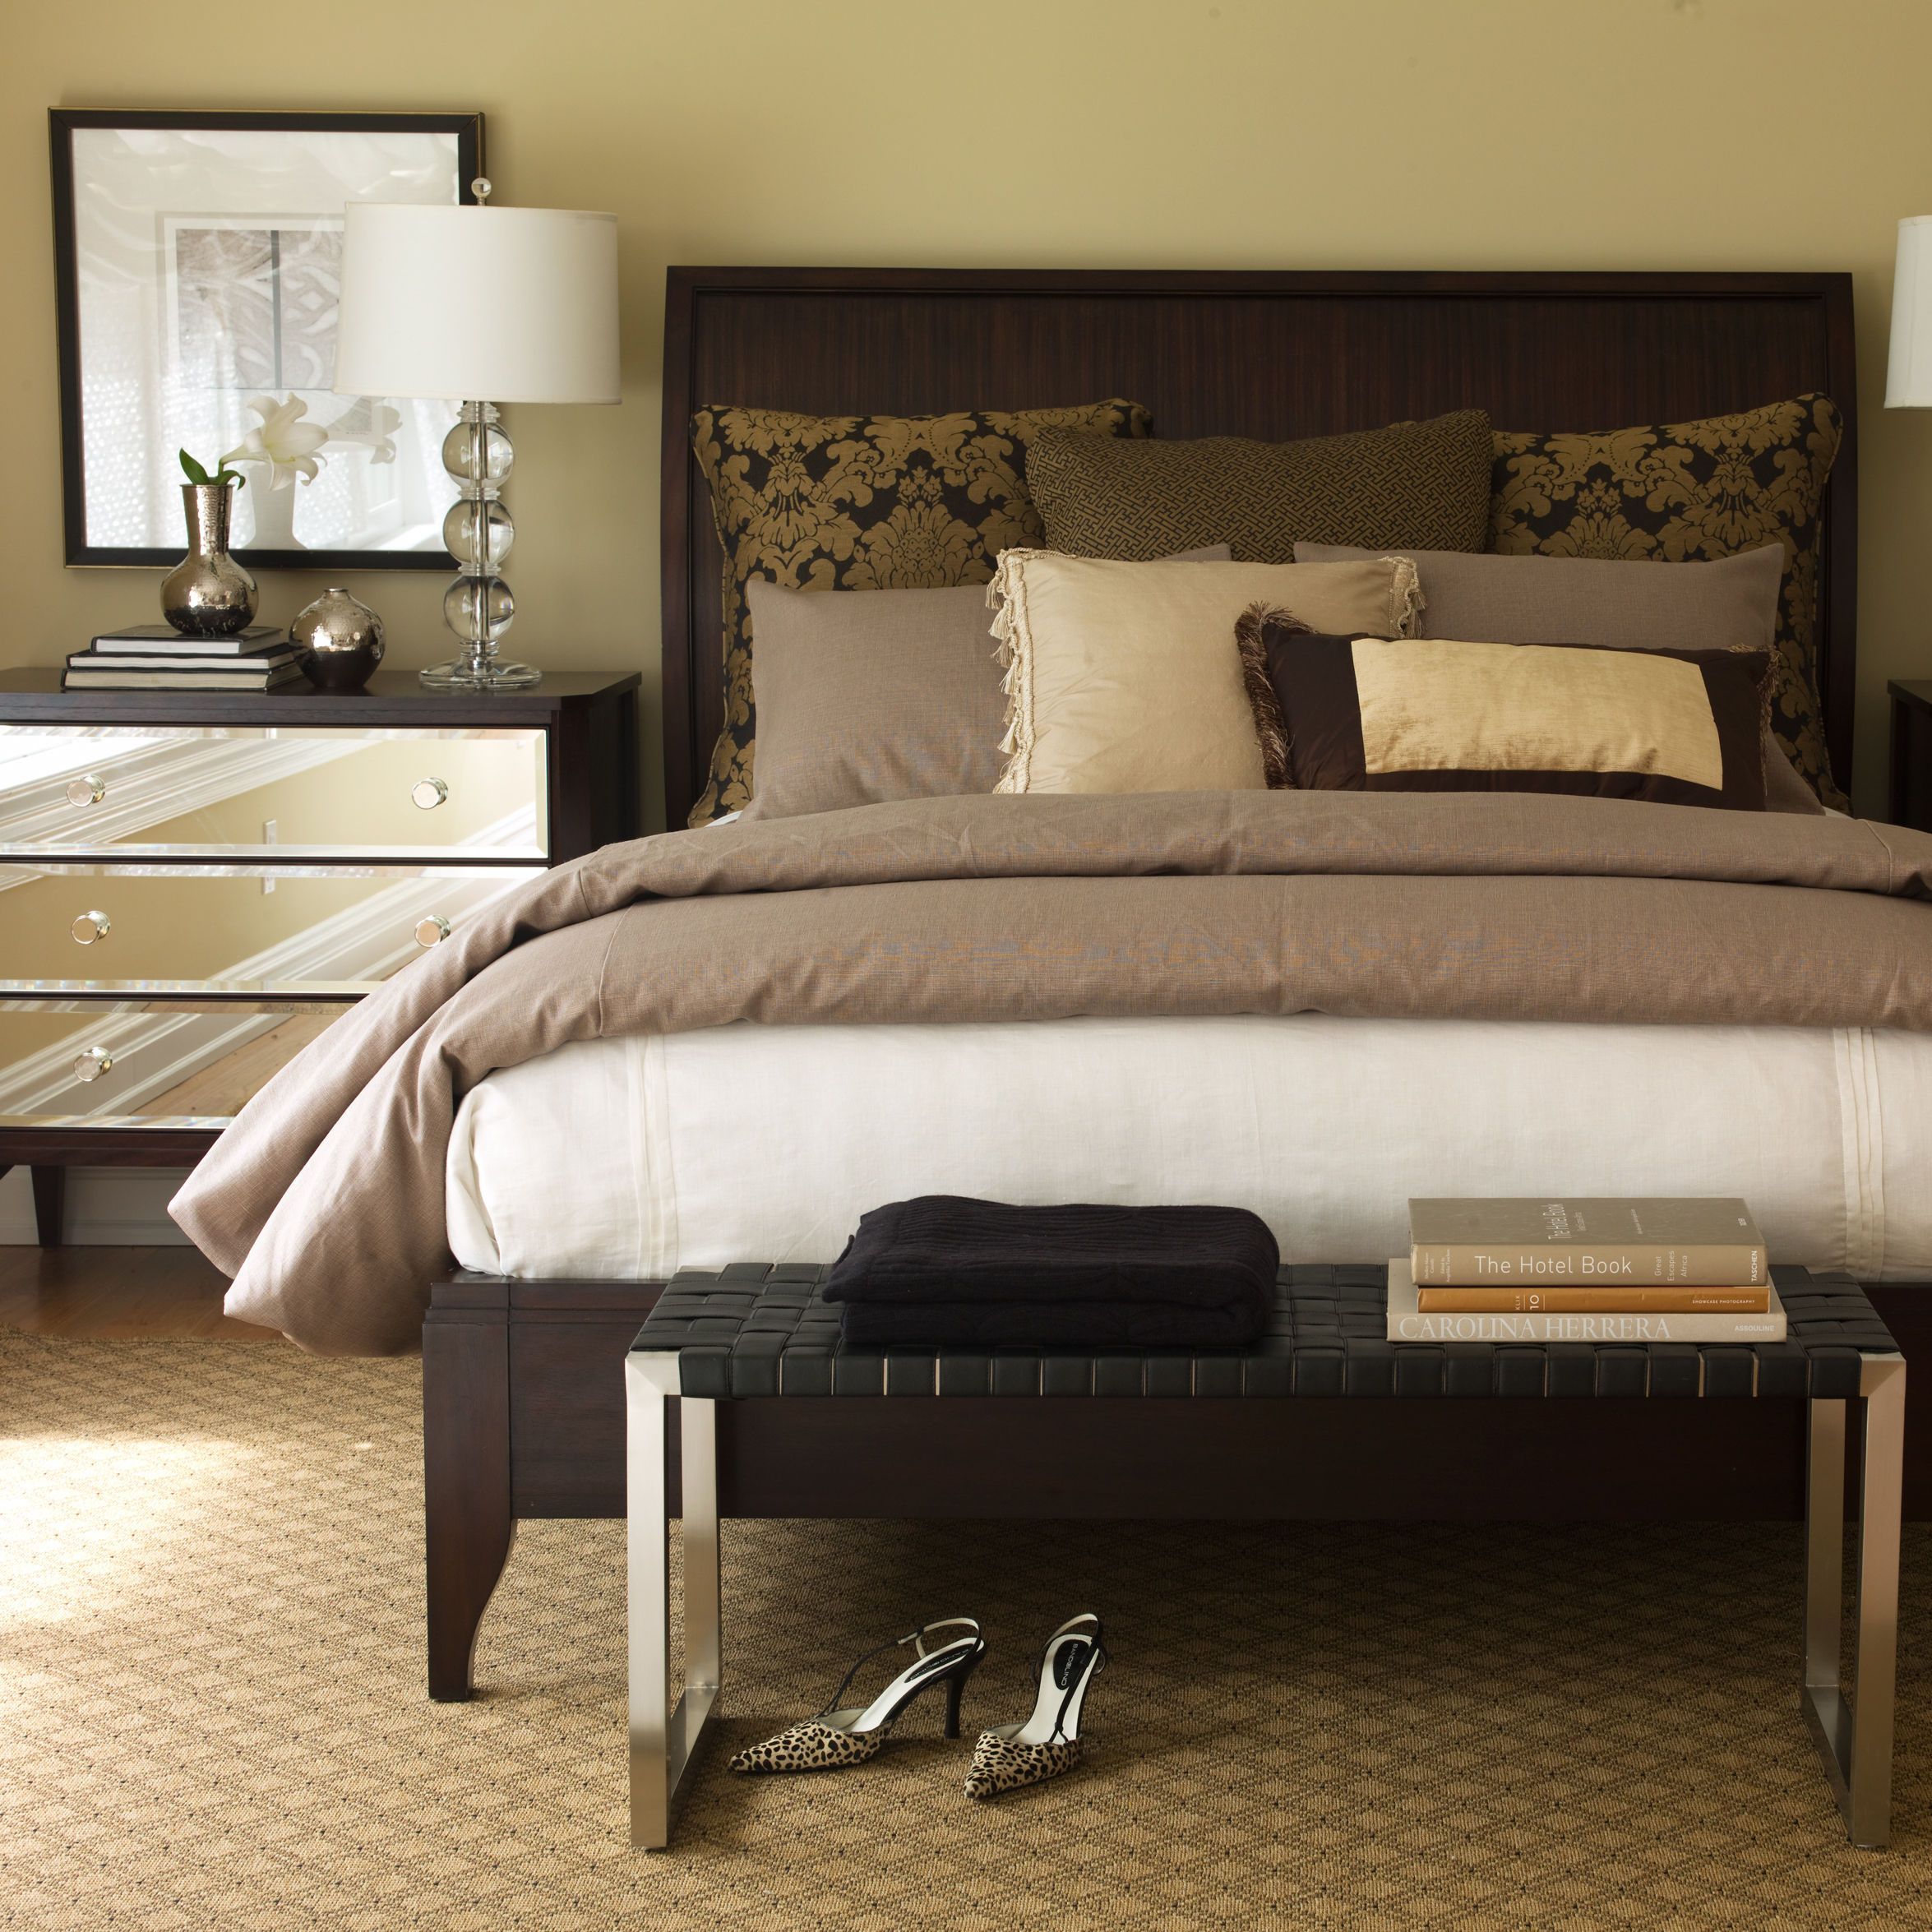 Ethan Allen Bedroom Sets Zen Type Bedroom Design Eiffel Tower Bedroom Decor Italian Bedroom Furniture Online: Neutral Interiors. Ethan Allen Bedrooms. Ethan Allen